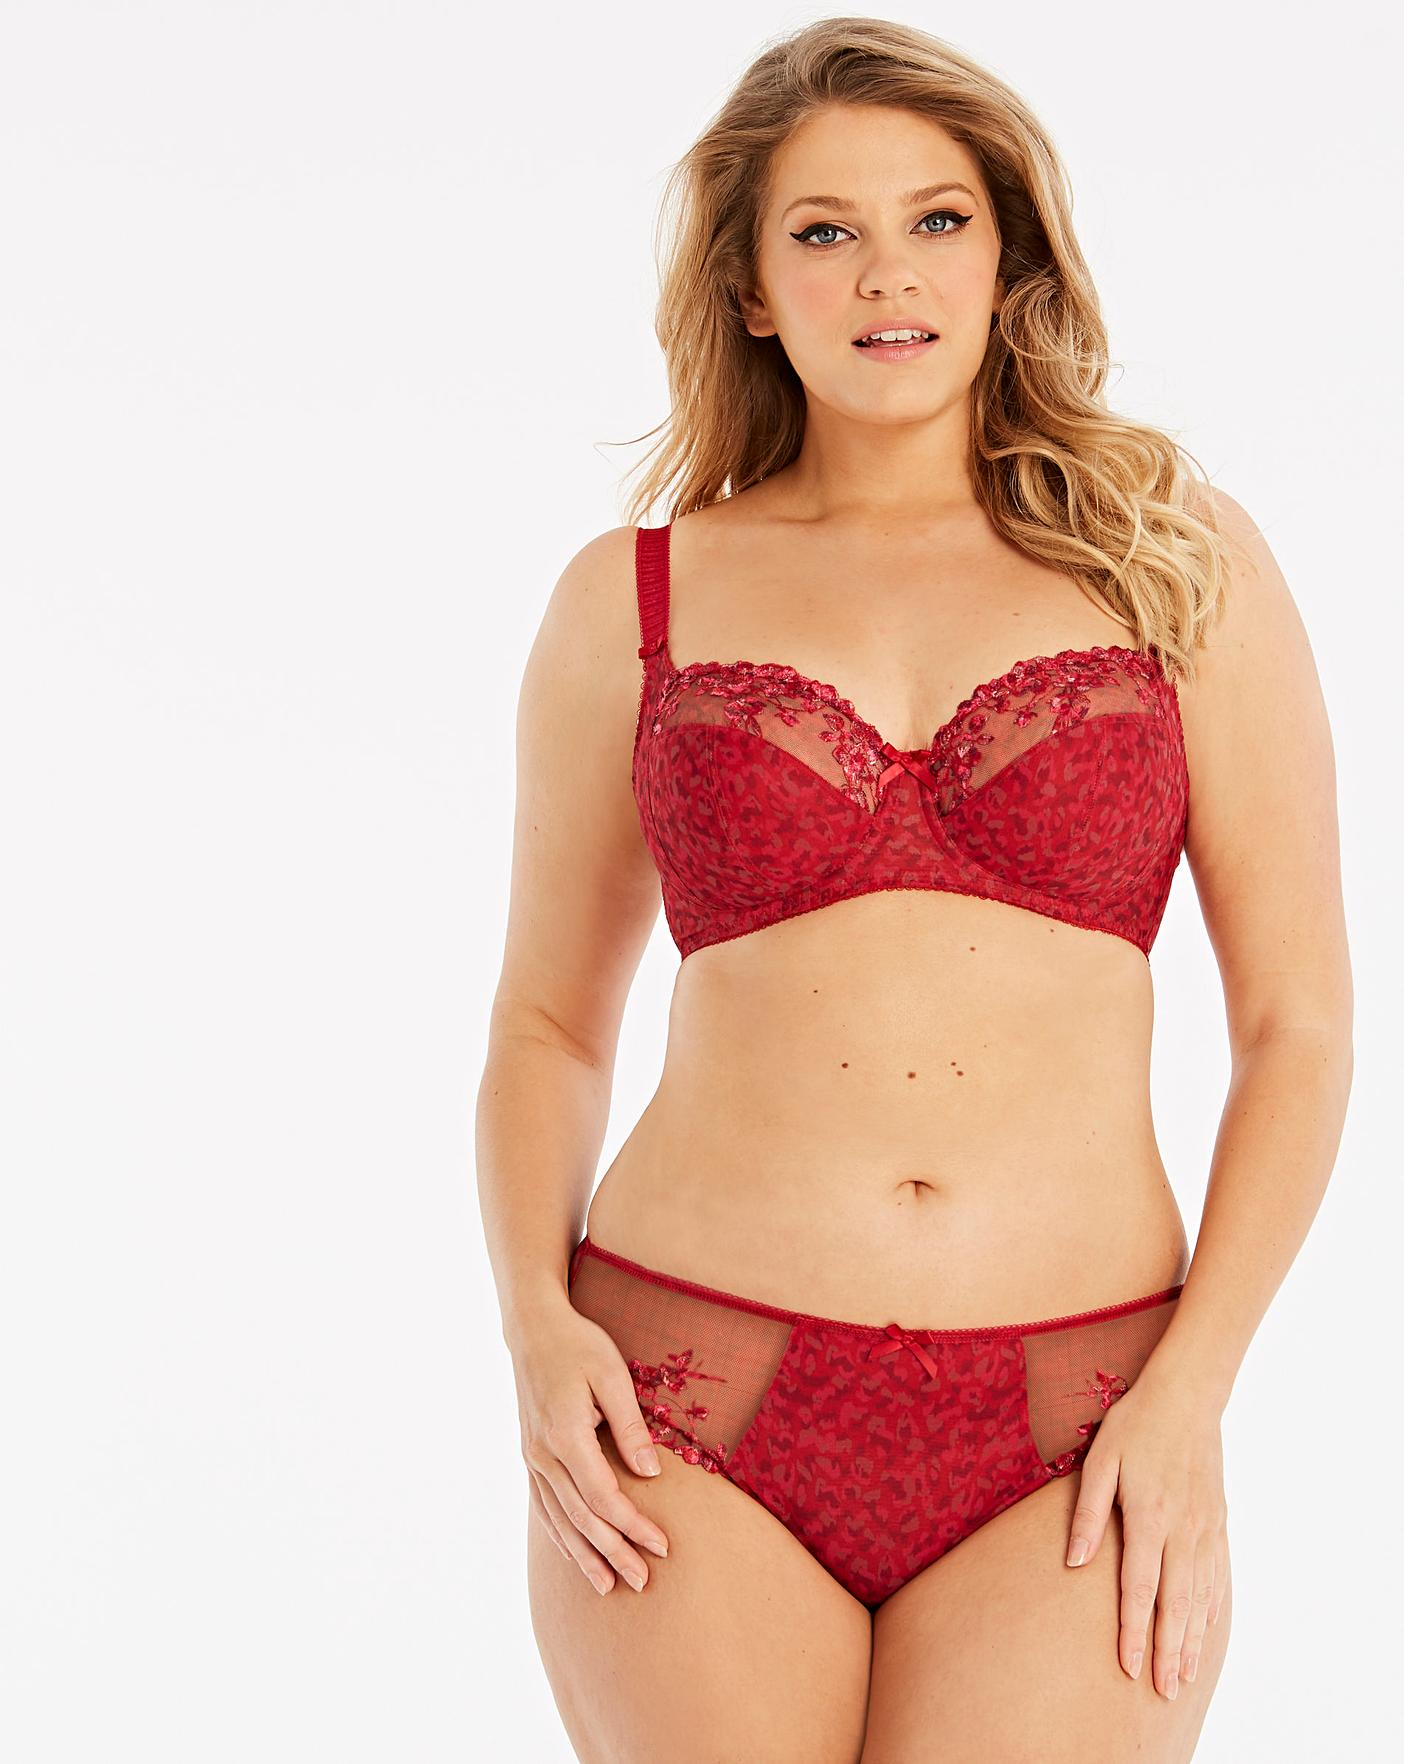 000a8f01cd Fantasie Lola Full Cup Wired Bra